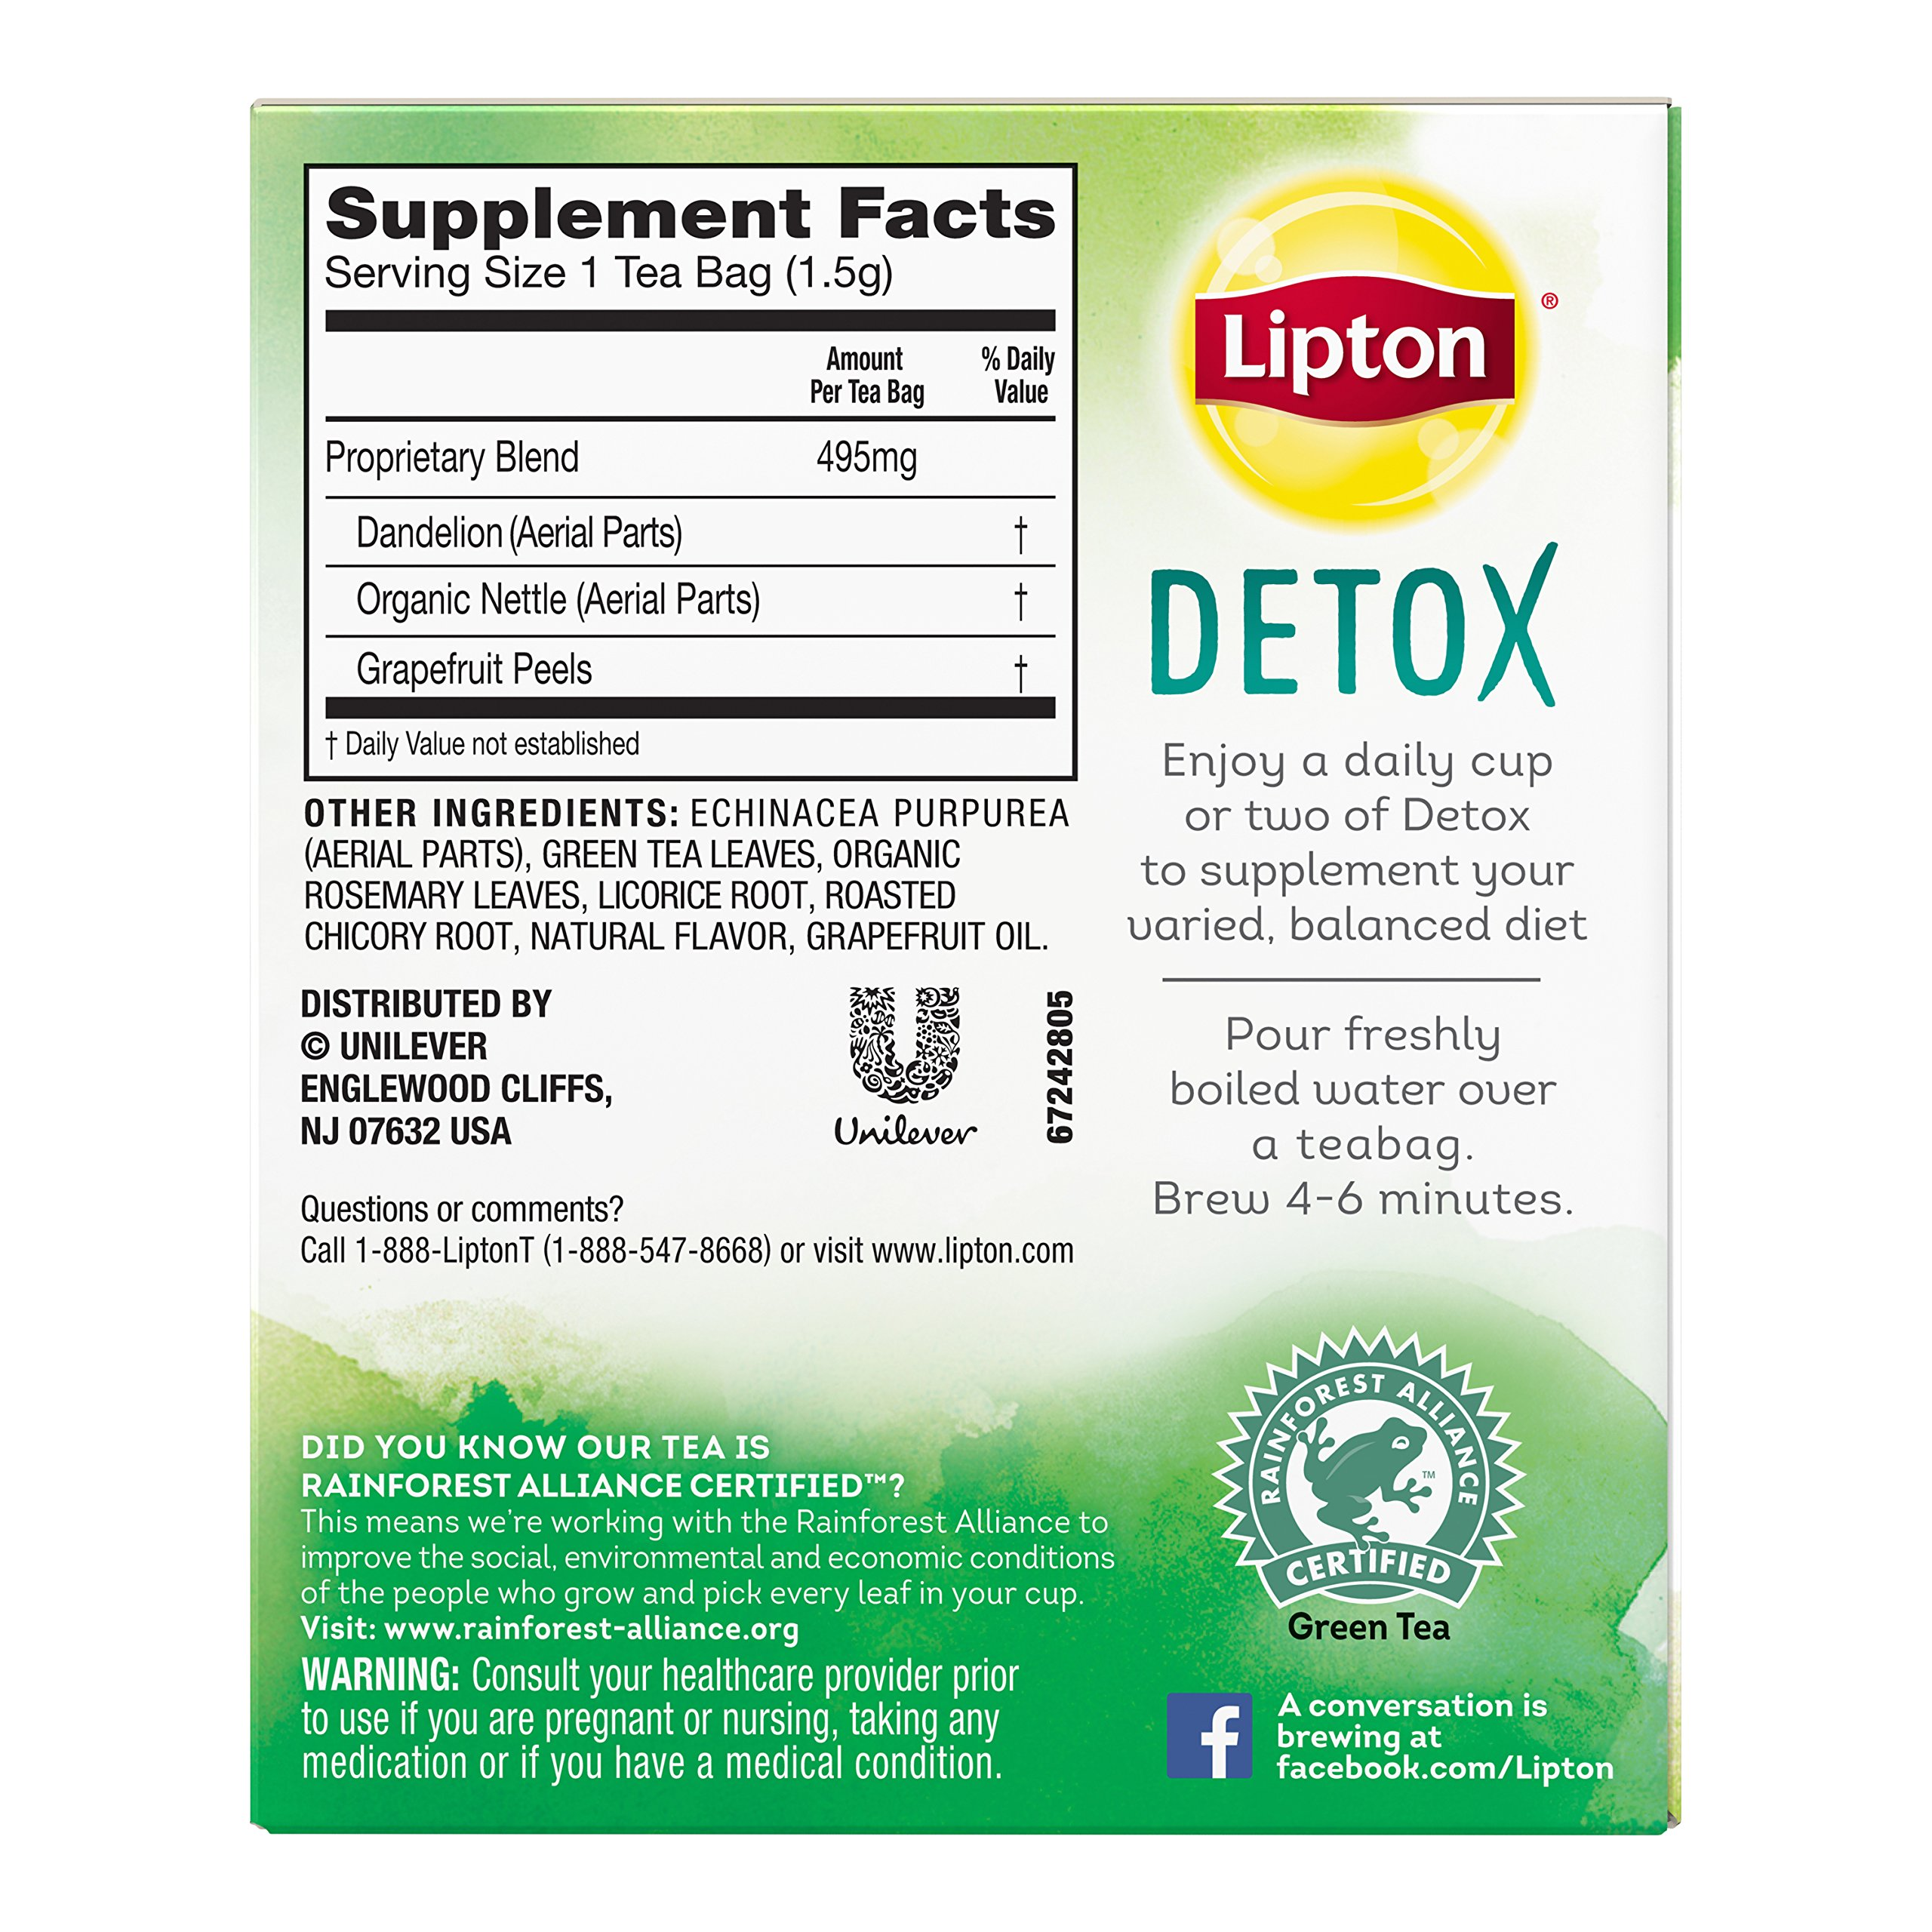 Lipton Herbal Supplement with Green Tea, Detox 15 ct, Pack of 4 by Lipton (Image #6)